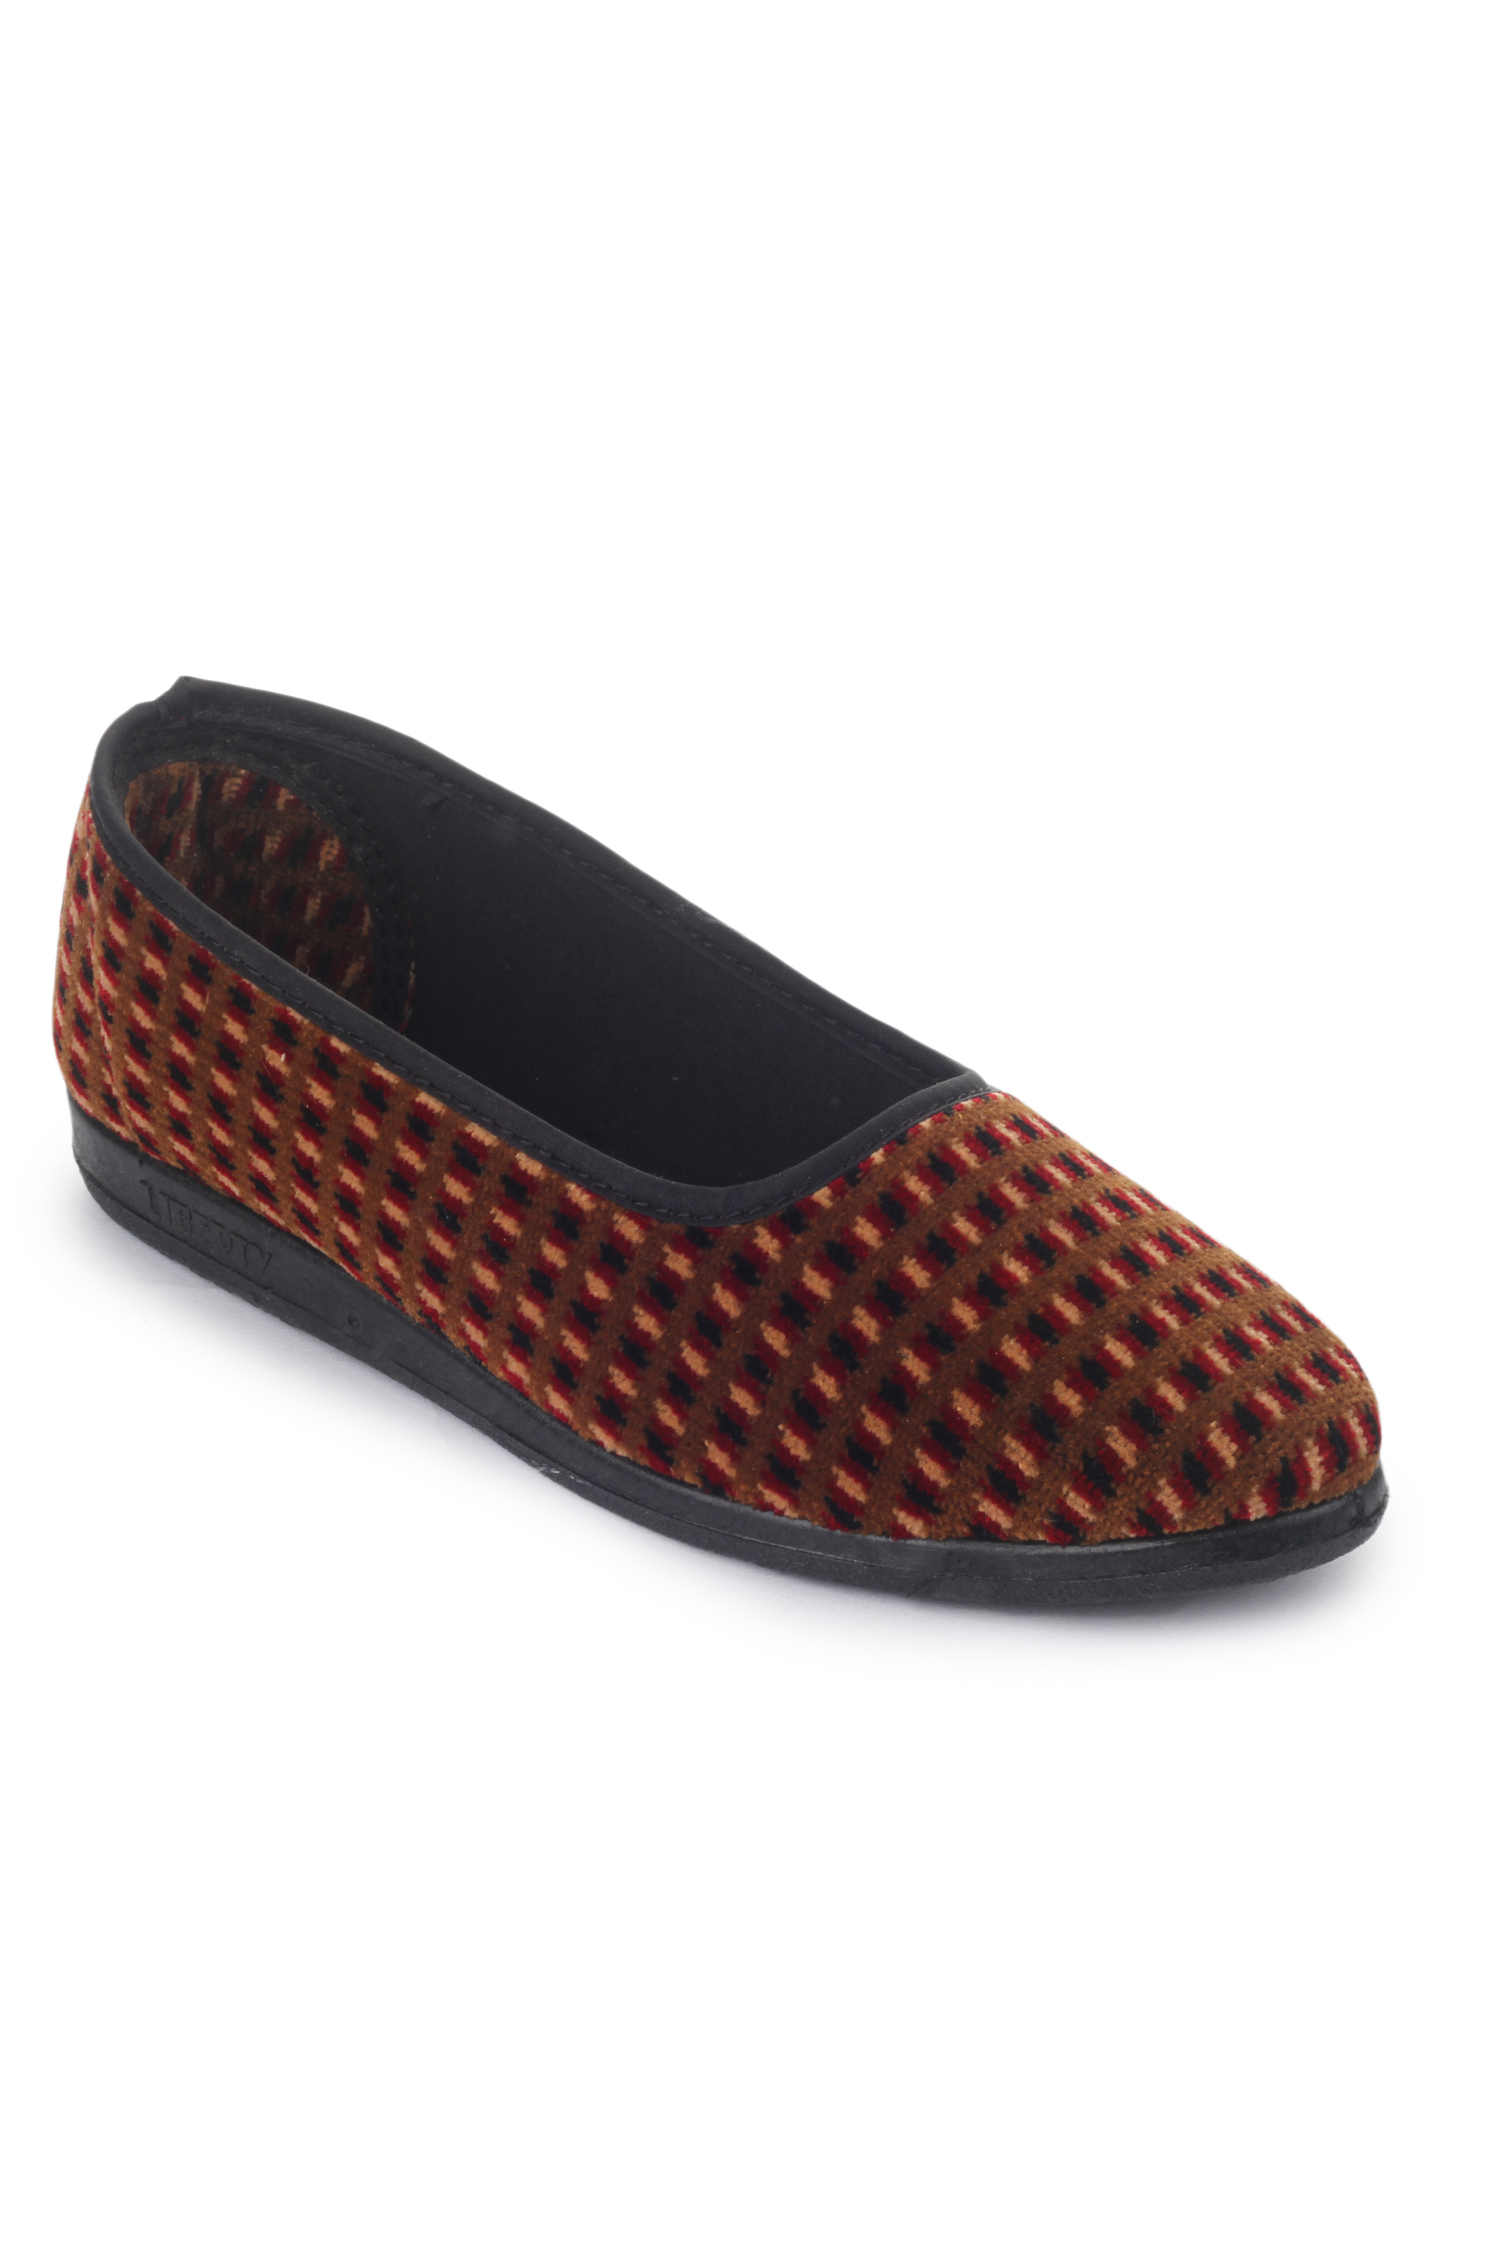 Liberty | Liberty Gliders Brown Ballerinas SPL.BELLY For - Ladies